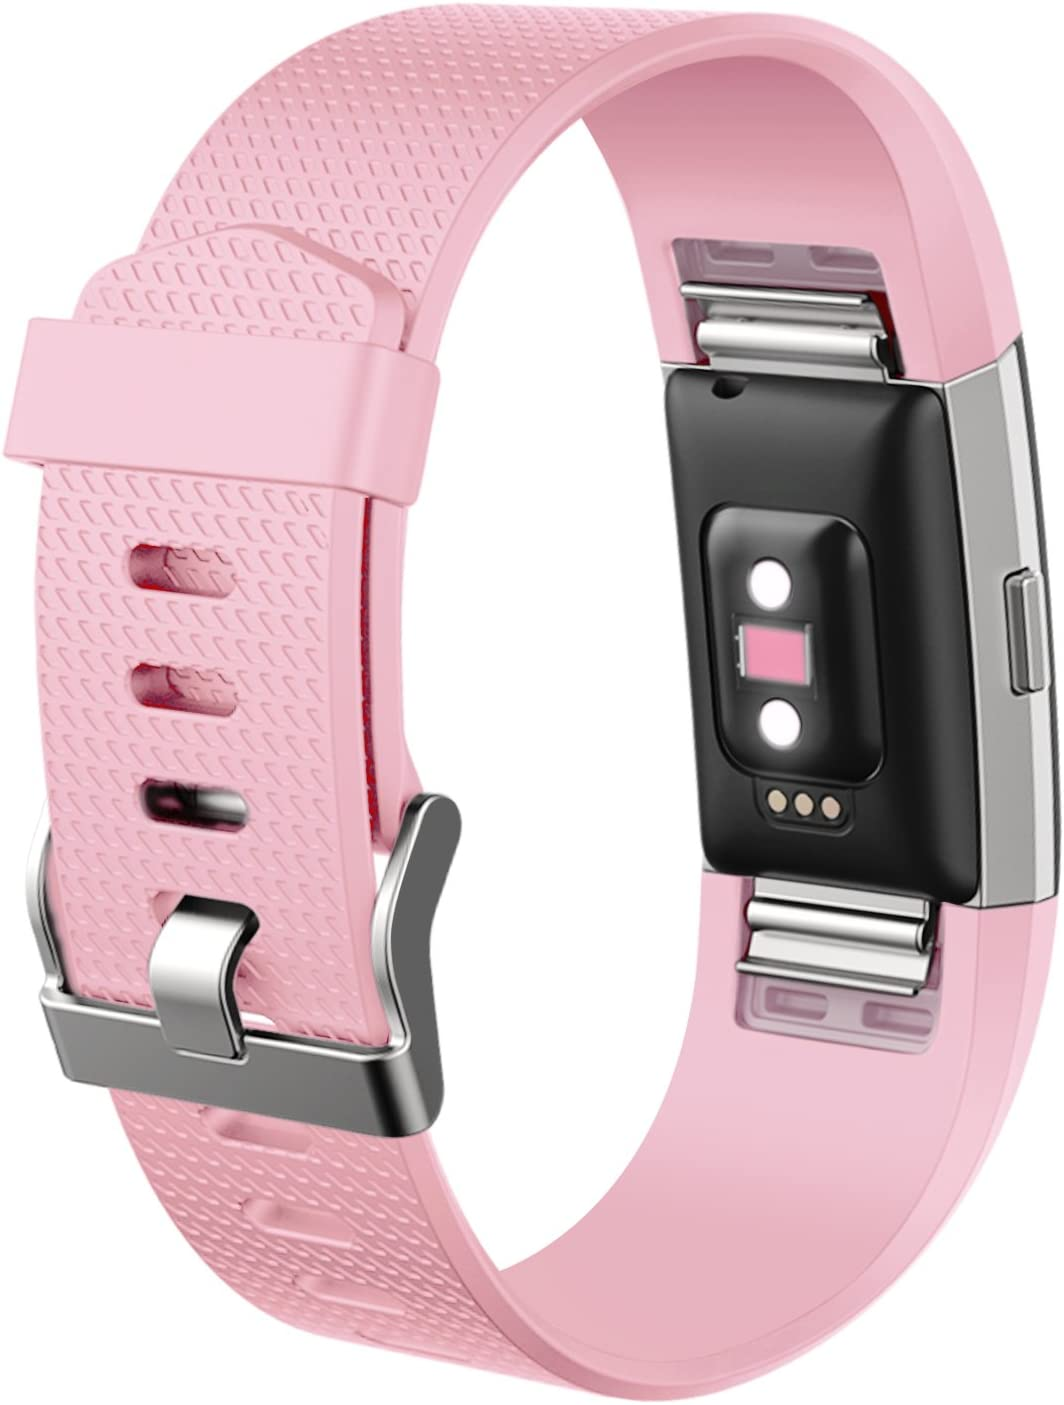 TPU Band Sport Straps with Metal Clasp Mornex Strap Compatible Fitbit Charge 2 Classic Adjustable Wristband Replacement Small